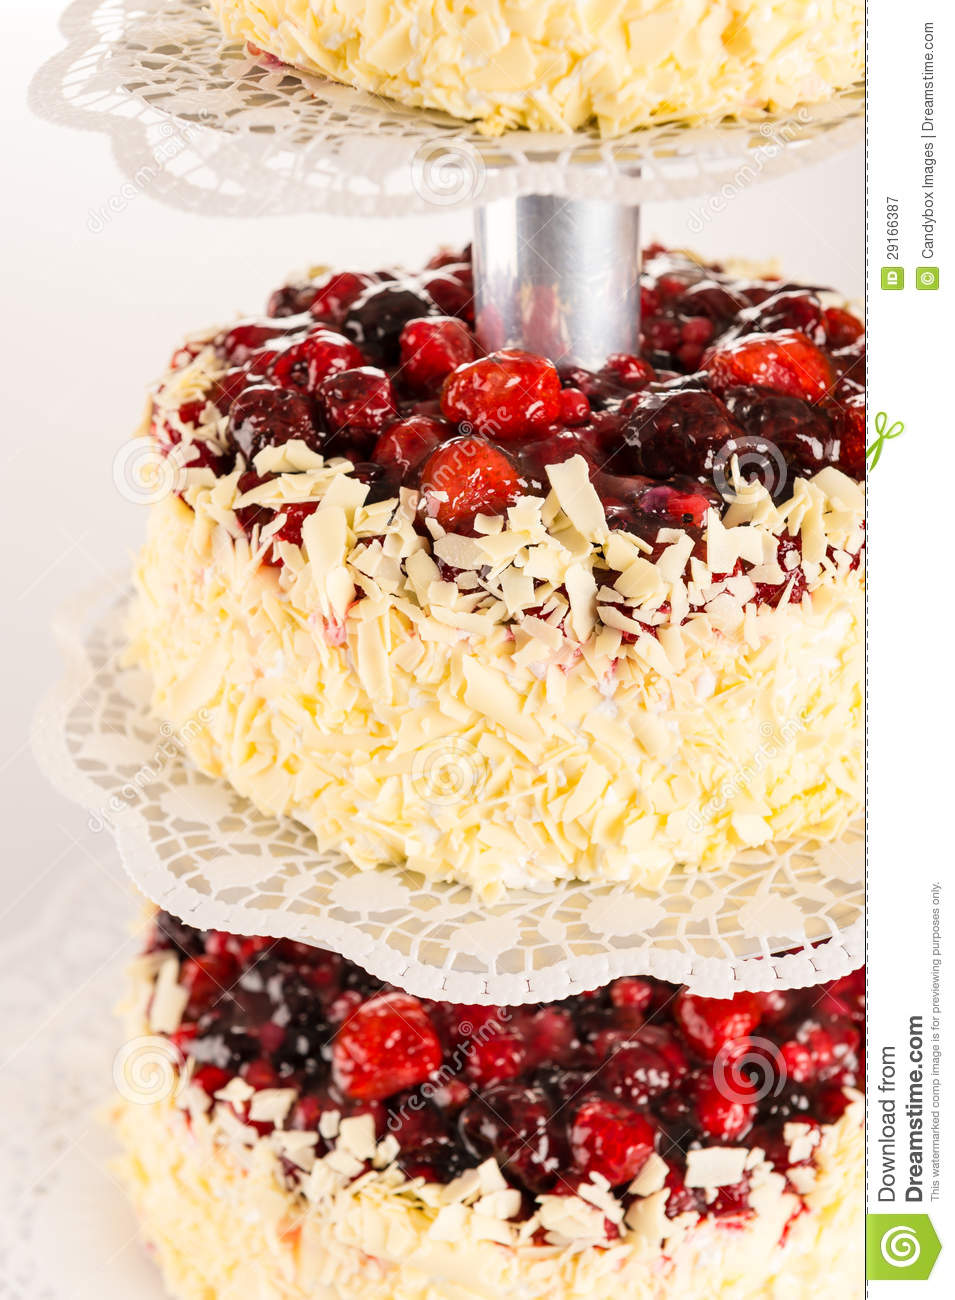 Wedding Cake White Chocolate And Red Berries Royalty Free